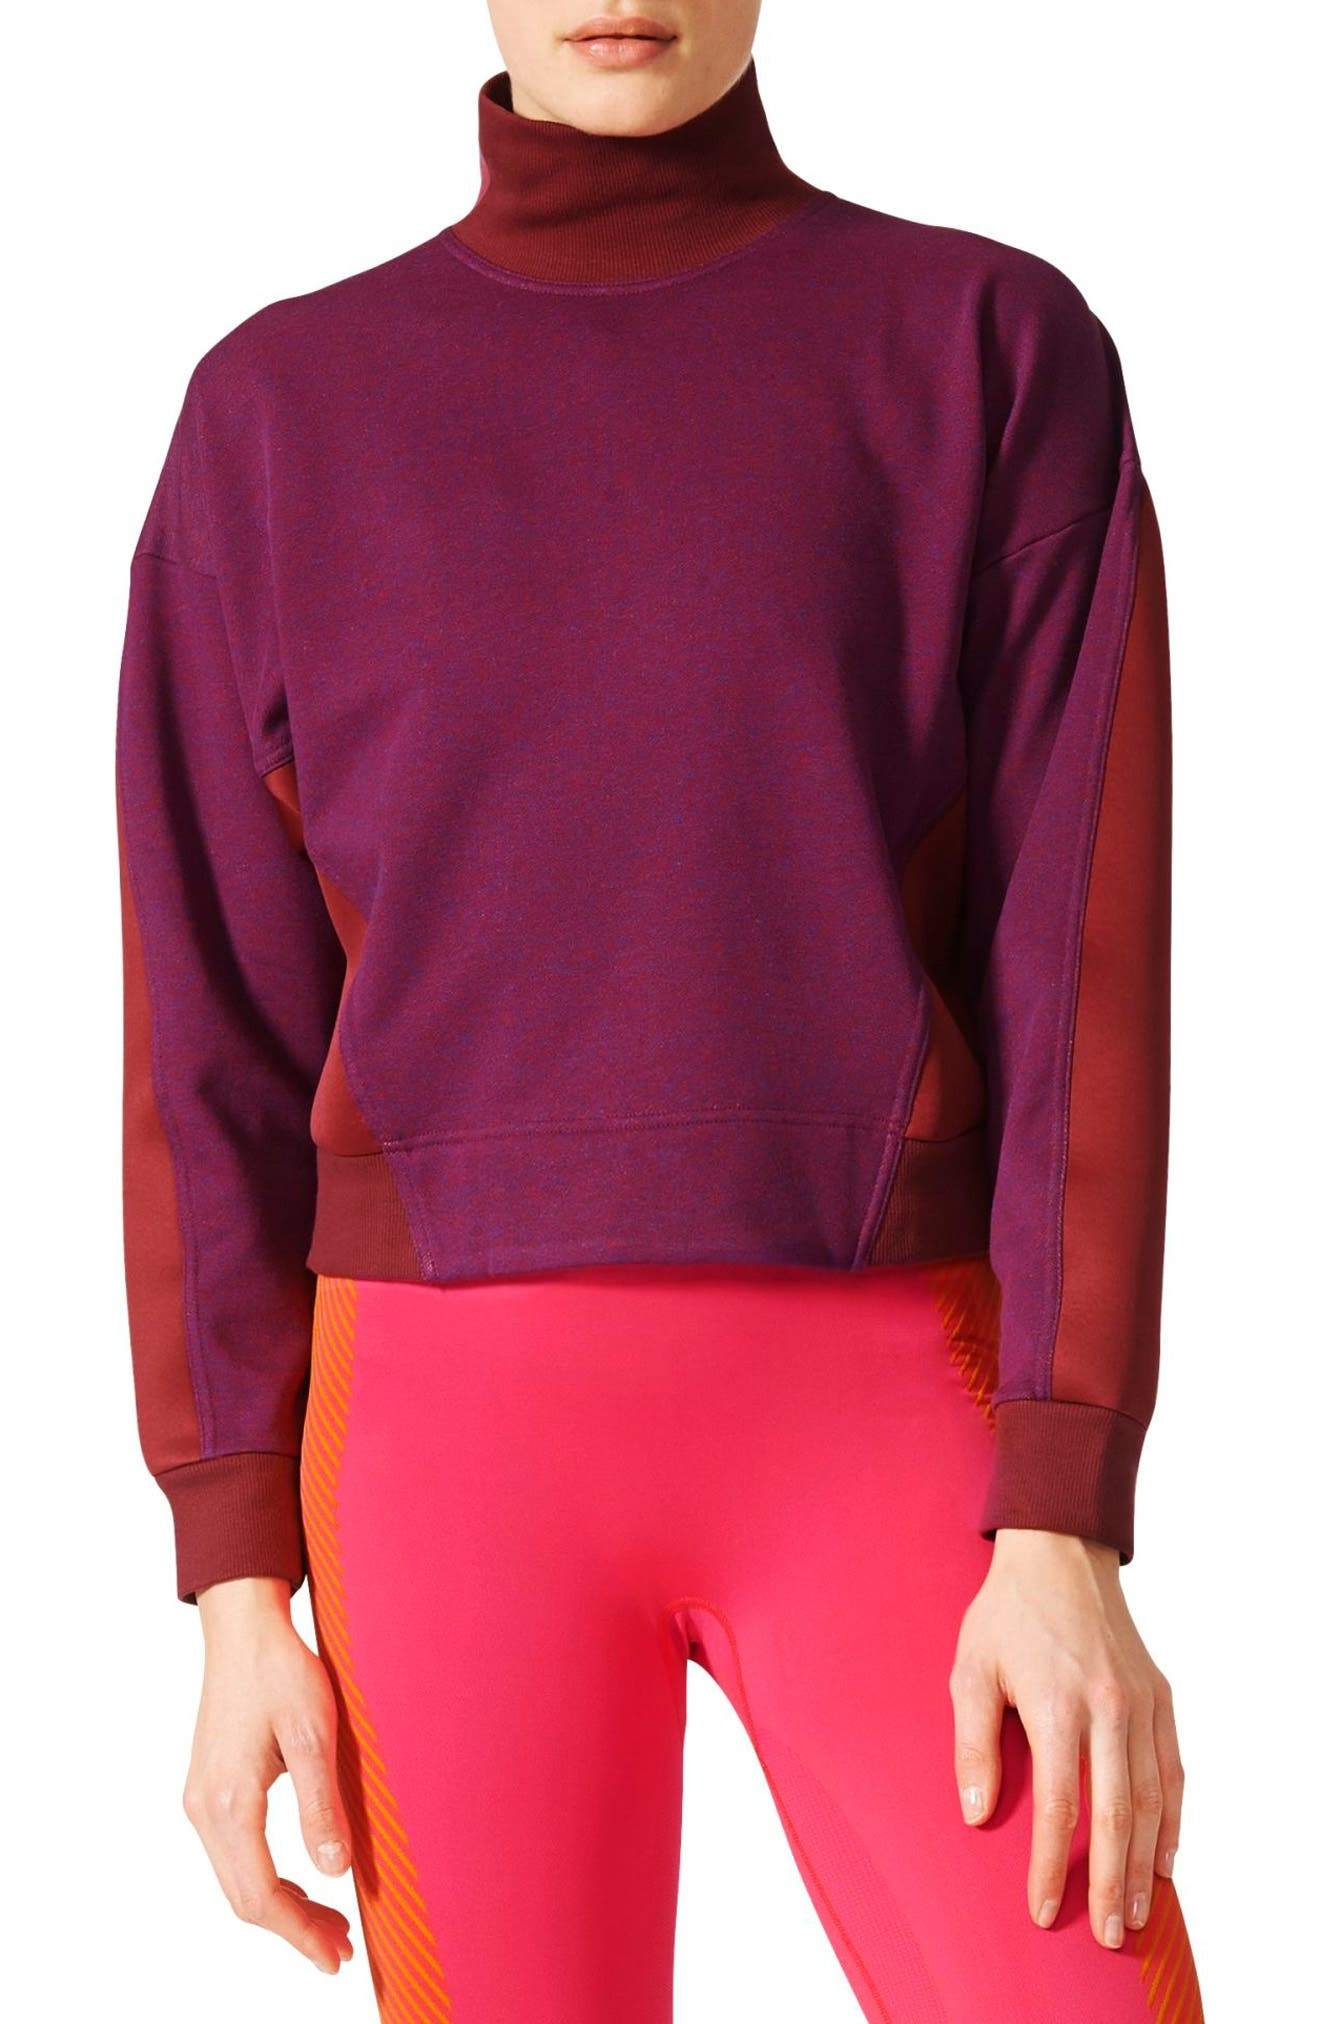 Alternate Image 1 Selected - adidas by Stella McCartney Yoga Turtleneck Sweatshirt